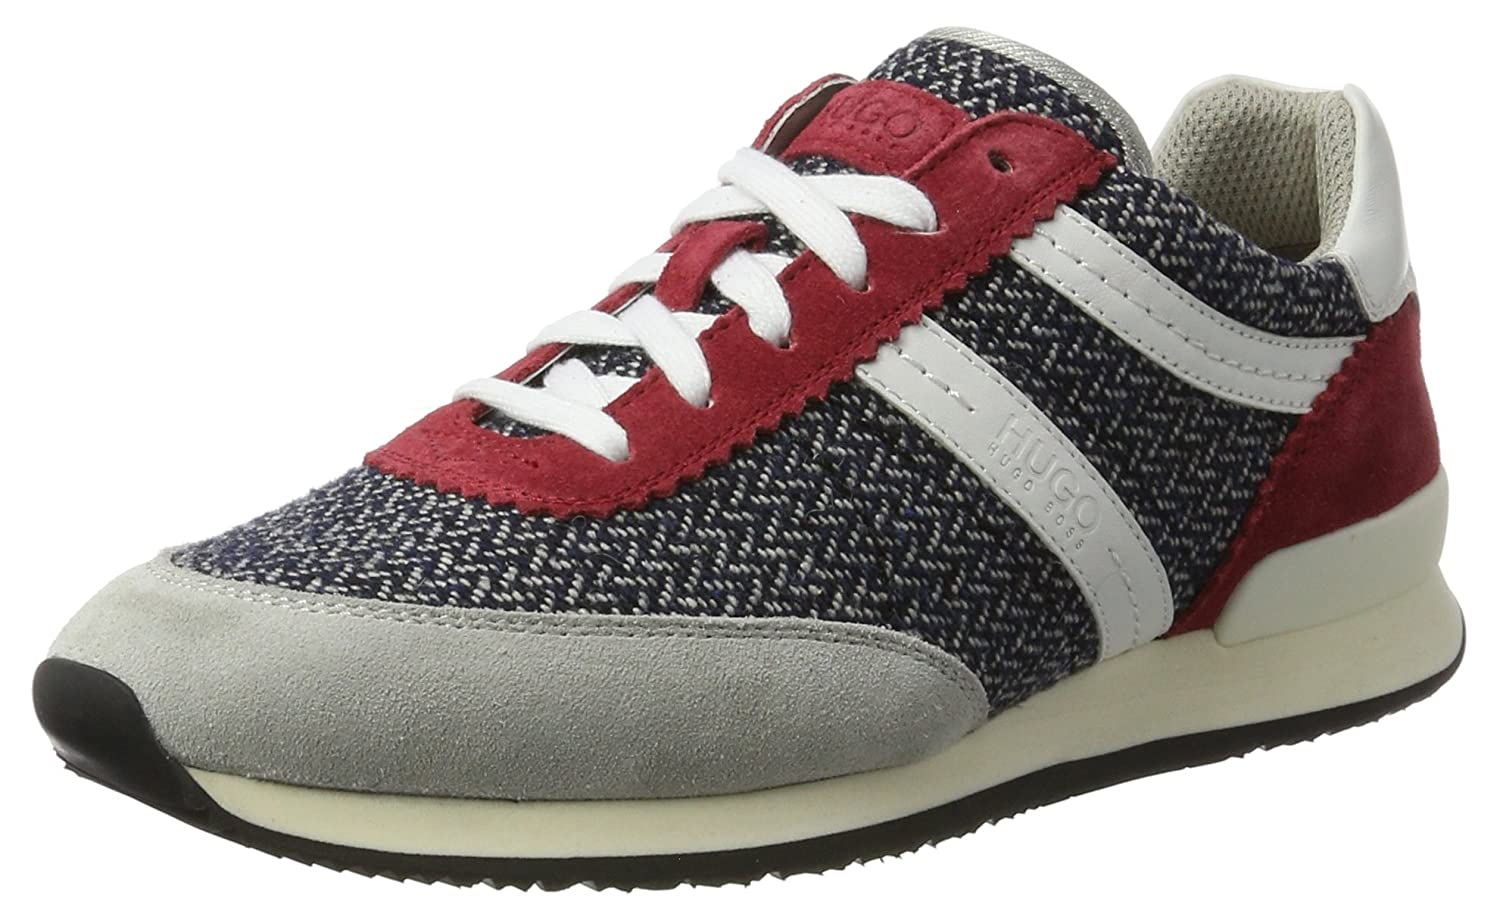 HUGO Adreny-pl Basses 10191482 01, Sneakers Basses (Dark Femme Rouge (Dark Sneakers Red) 80e45bb - shopssong.space